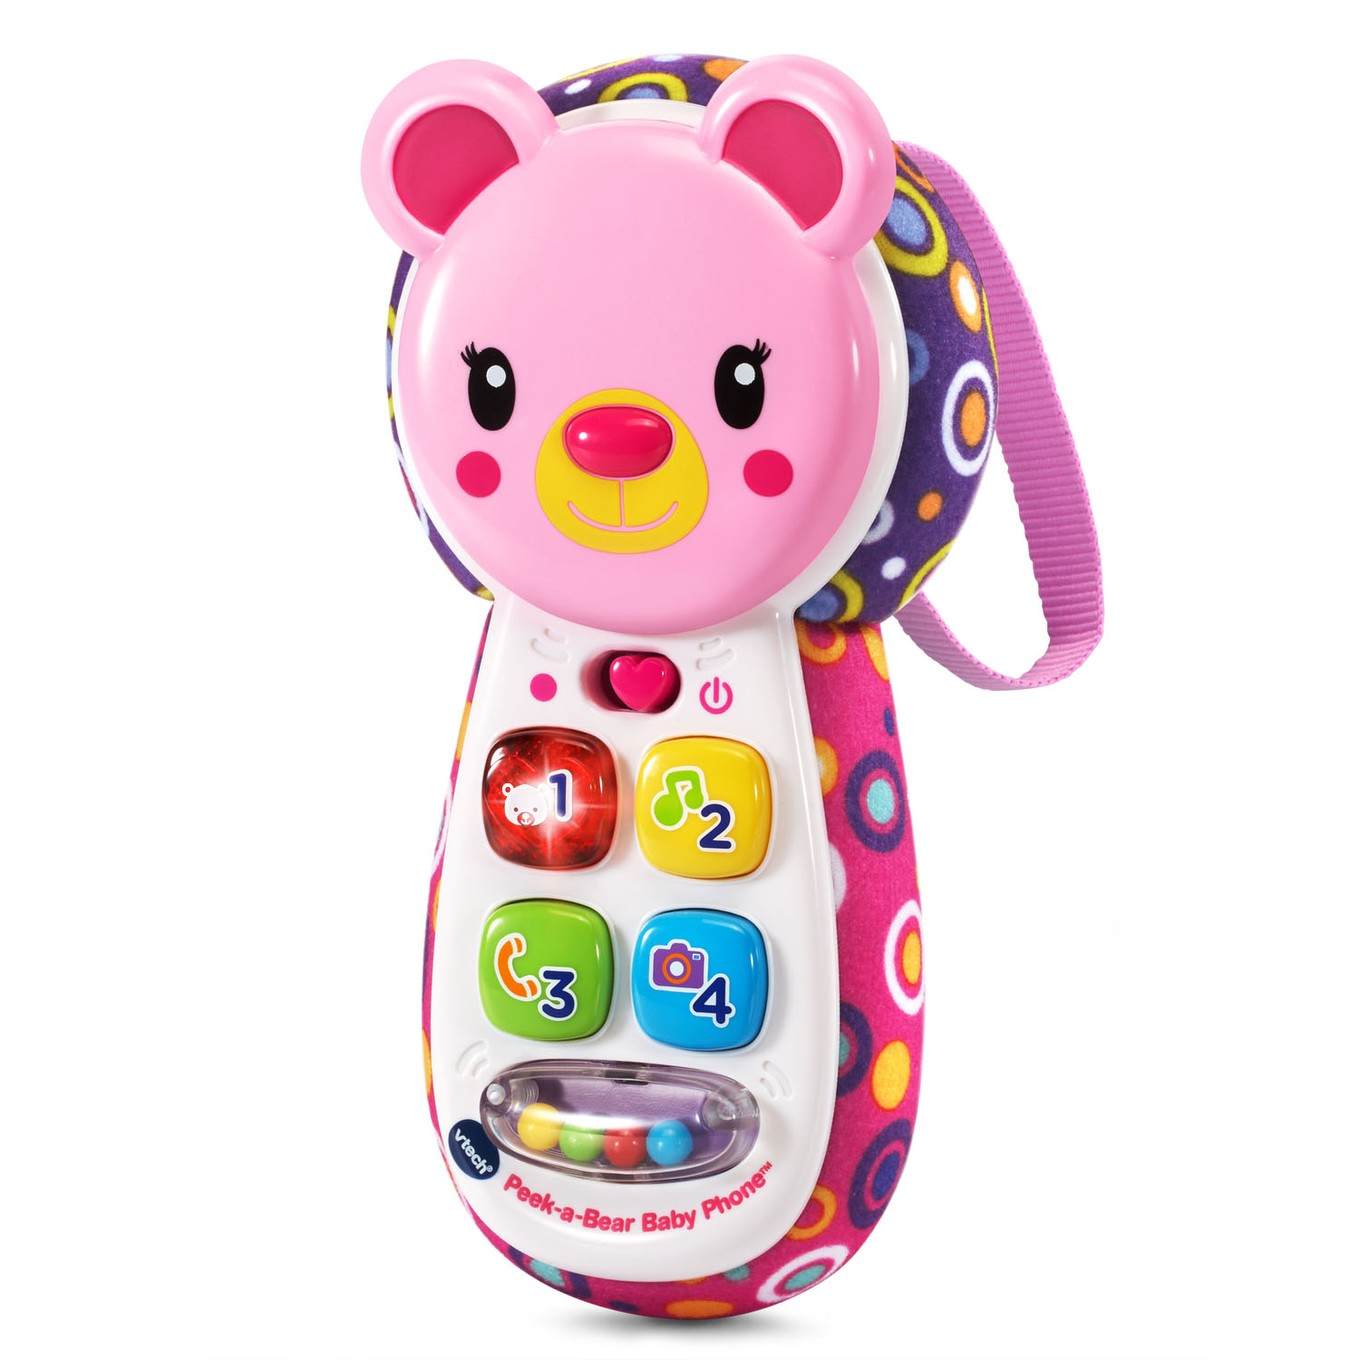 peek a bear baby phone pink vtech. Black Bedroom Furniture Sets. Home Design Ideas